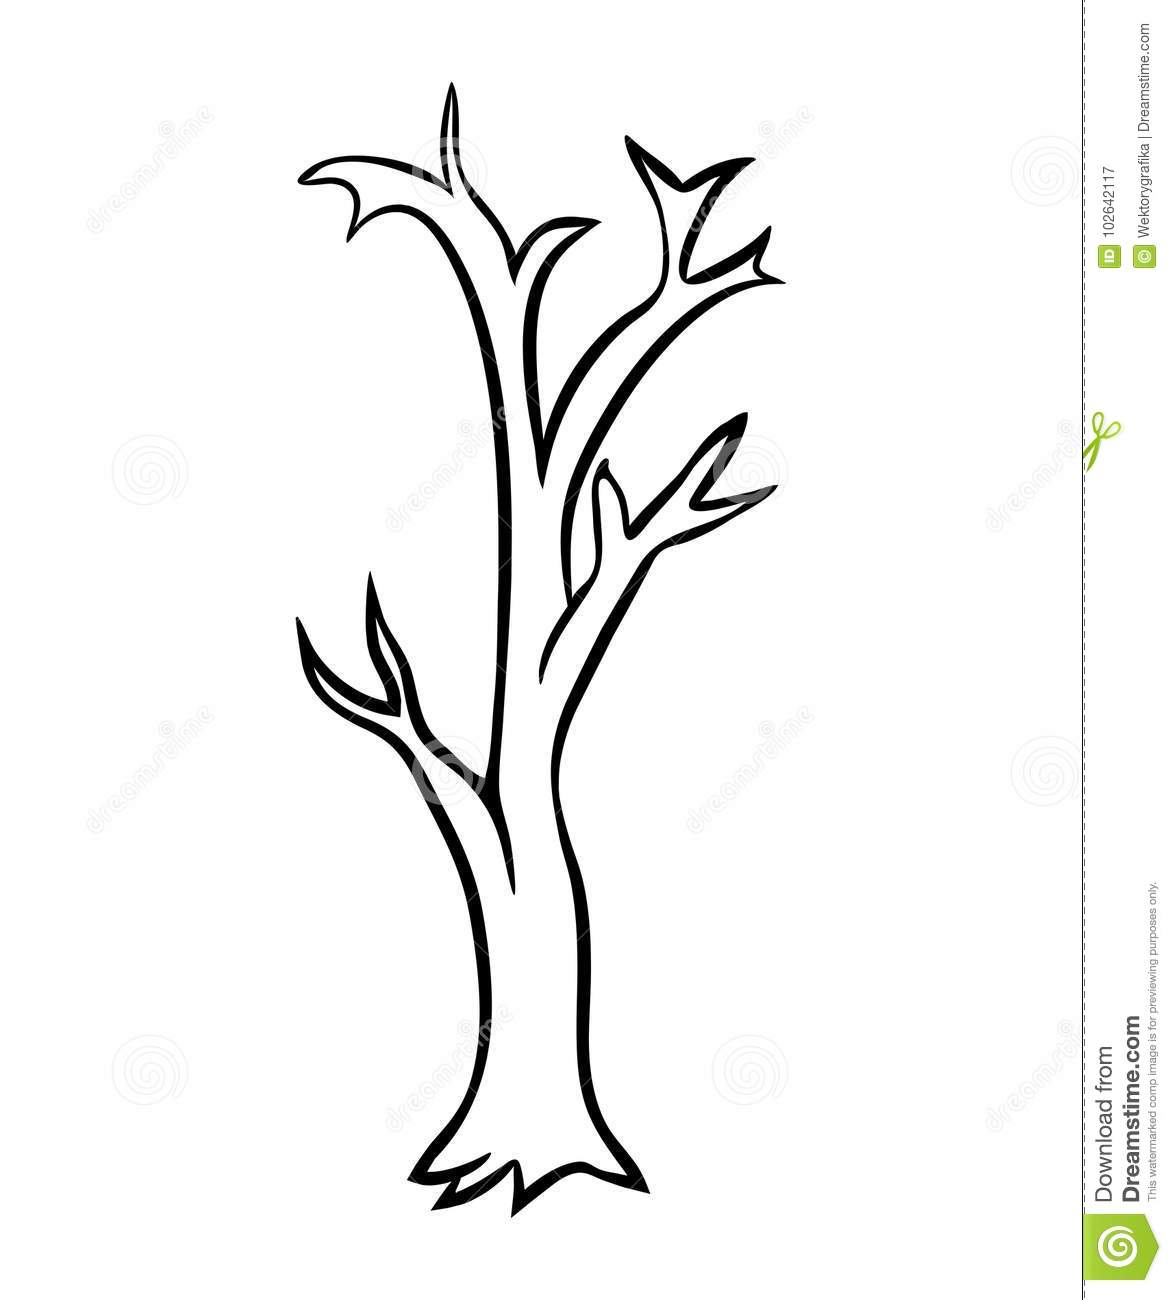 Bare Tree Cartoon Outline Vector Design Isolated On White